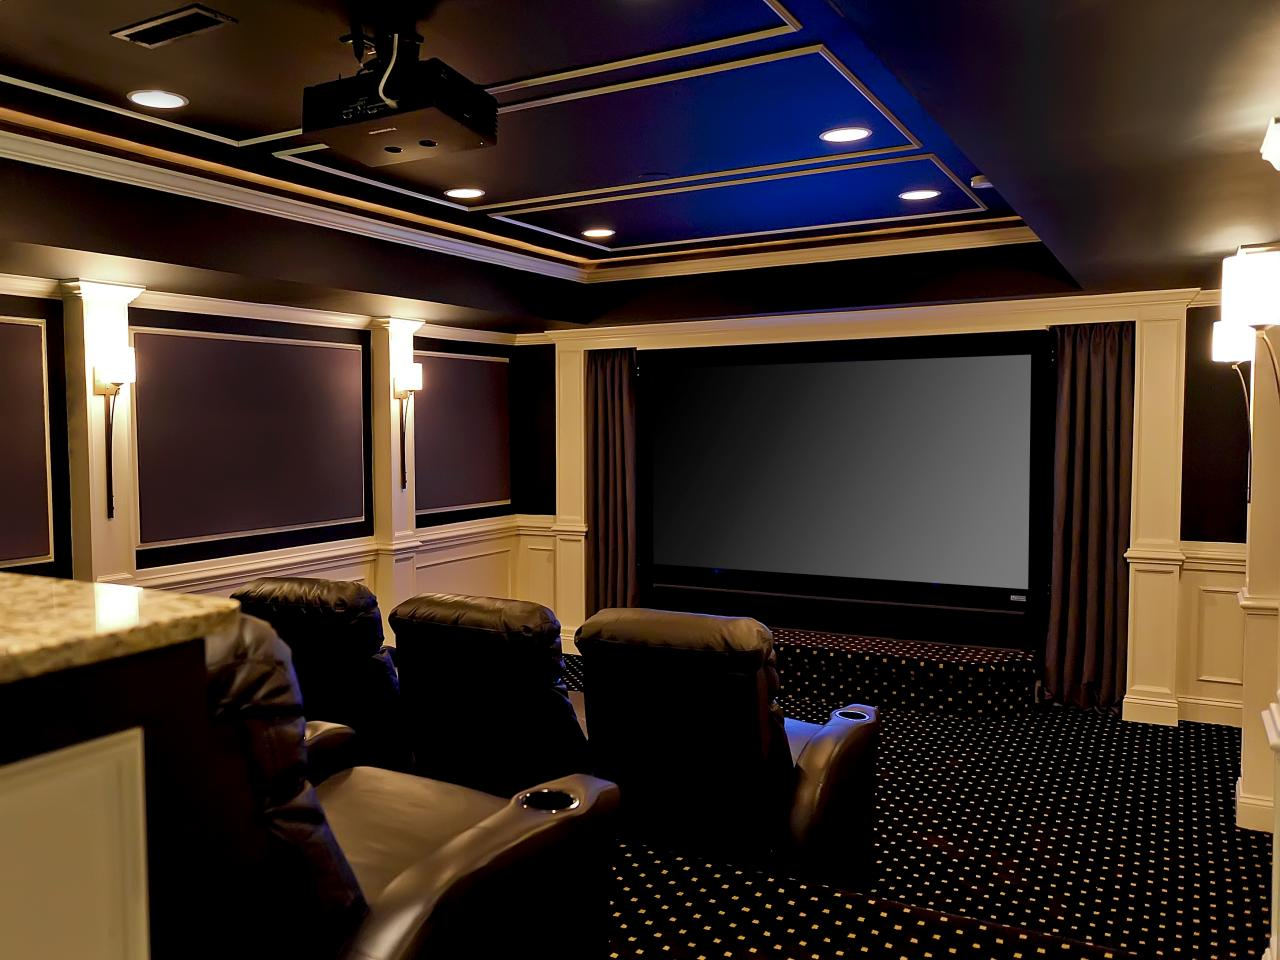 Basement home theater ideas pictures options expert tips home remodeling ideas for Home cinema interior design ideas